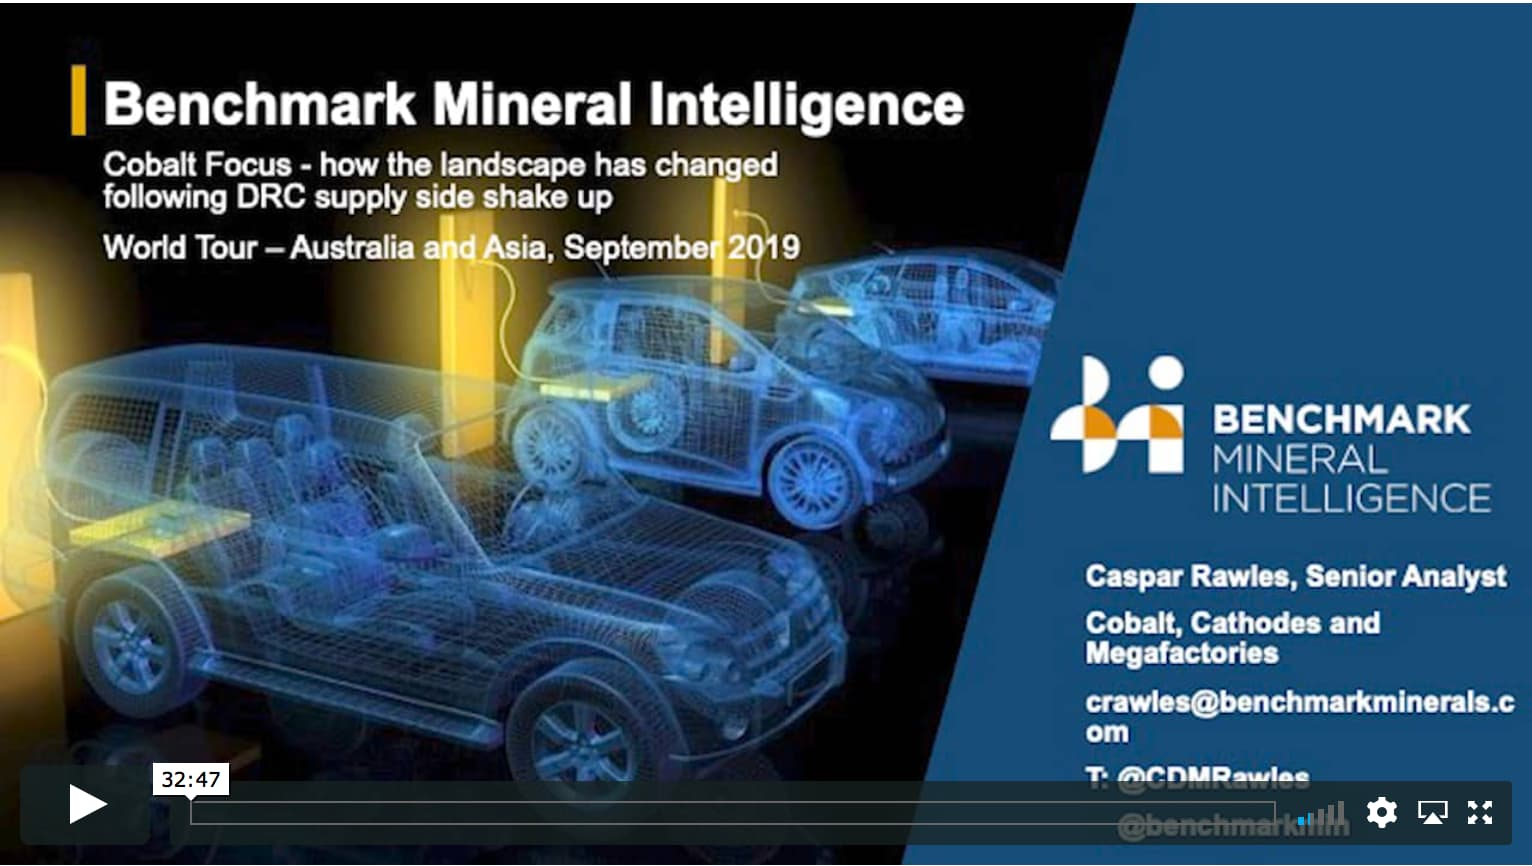 Cobalt Focus : how the landscape has changed following DRC supply side shake up